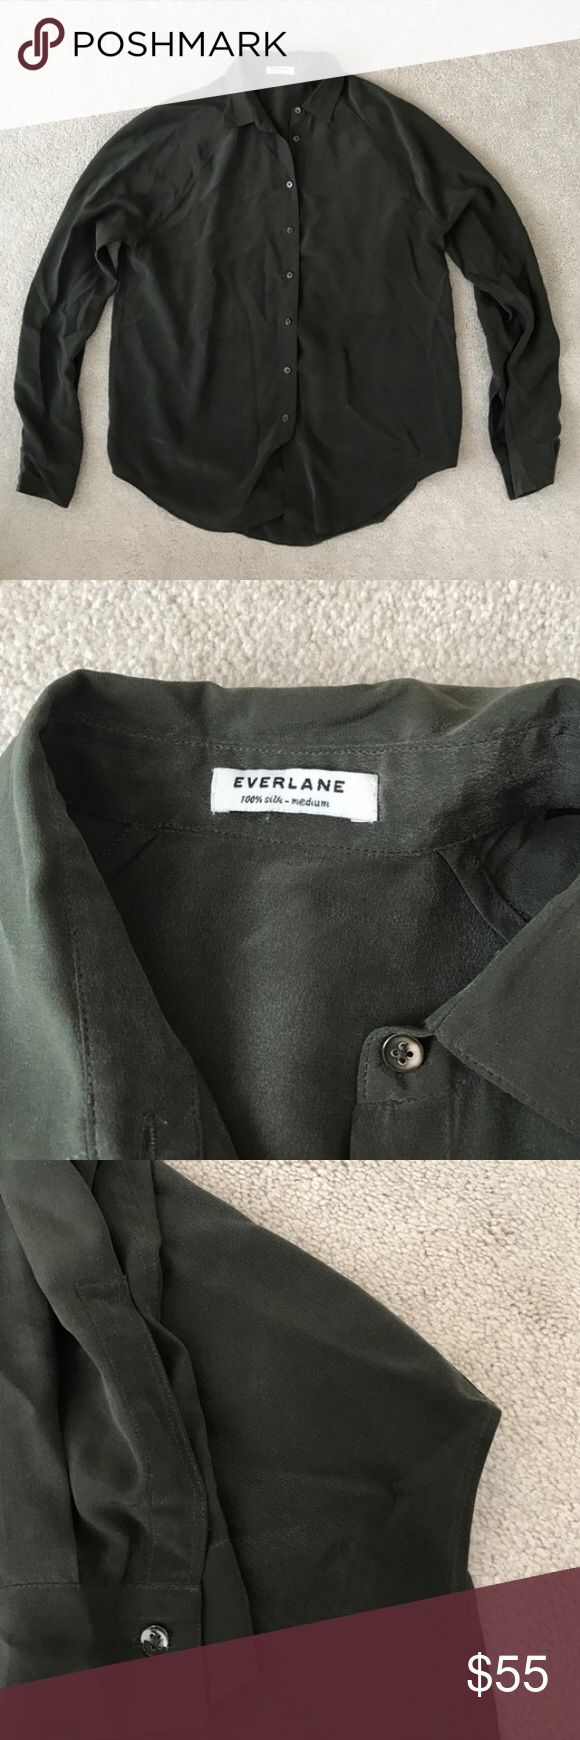 Everlane Silk Point Collar Shirt Everlane silk Point collar shirt in dark green. 100% silk. Dry clean only. No stains or imperfections on the silk, but one button is cracked as pictured. Could easily be replaced. Everlane Tops Blouses